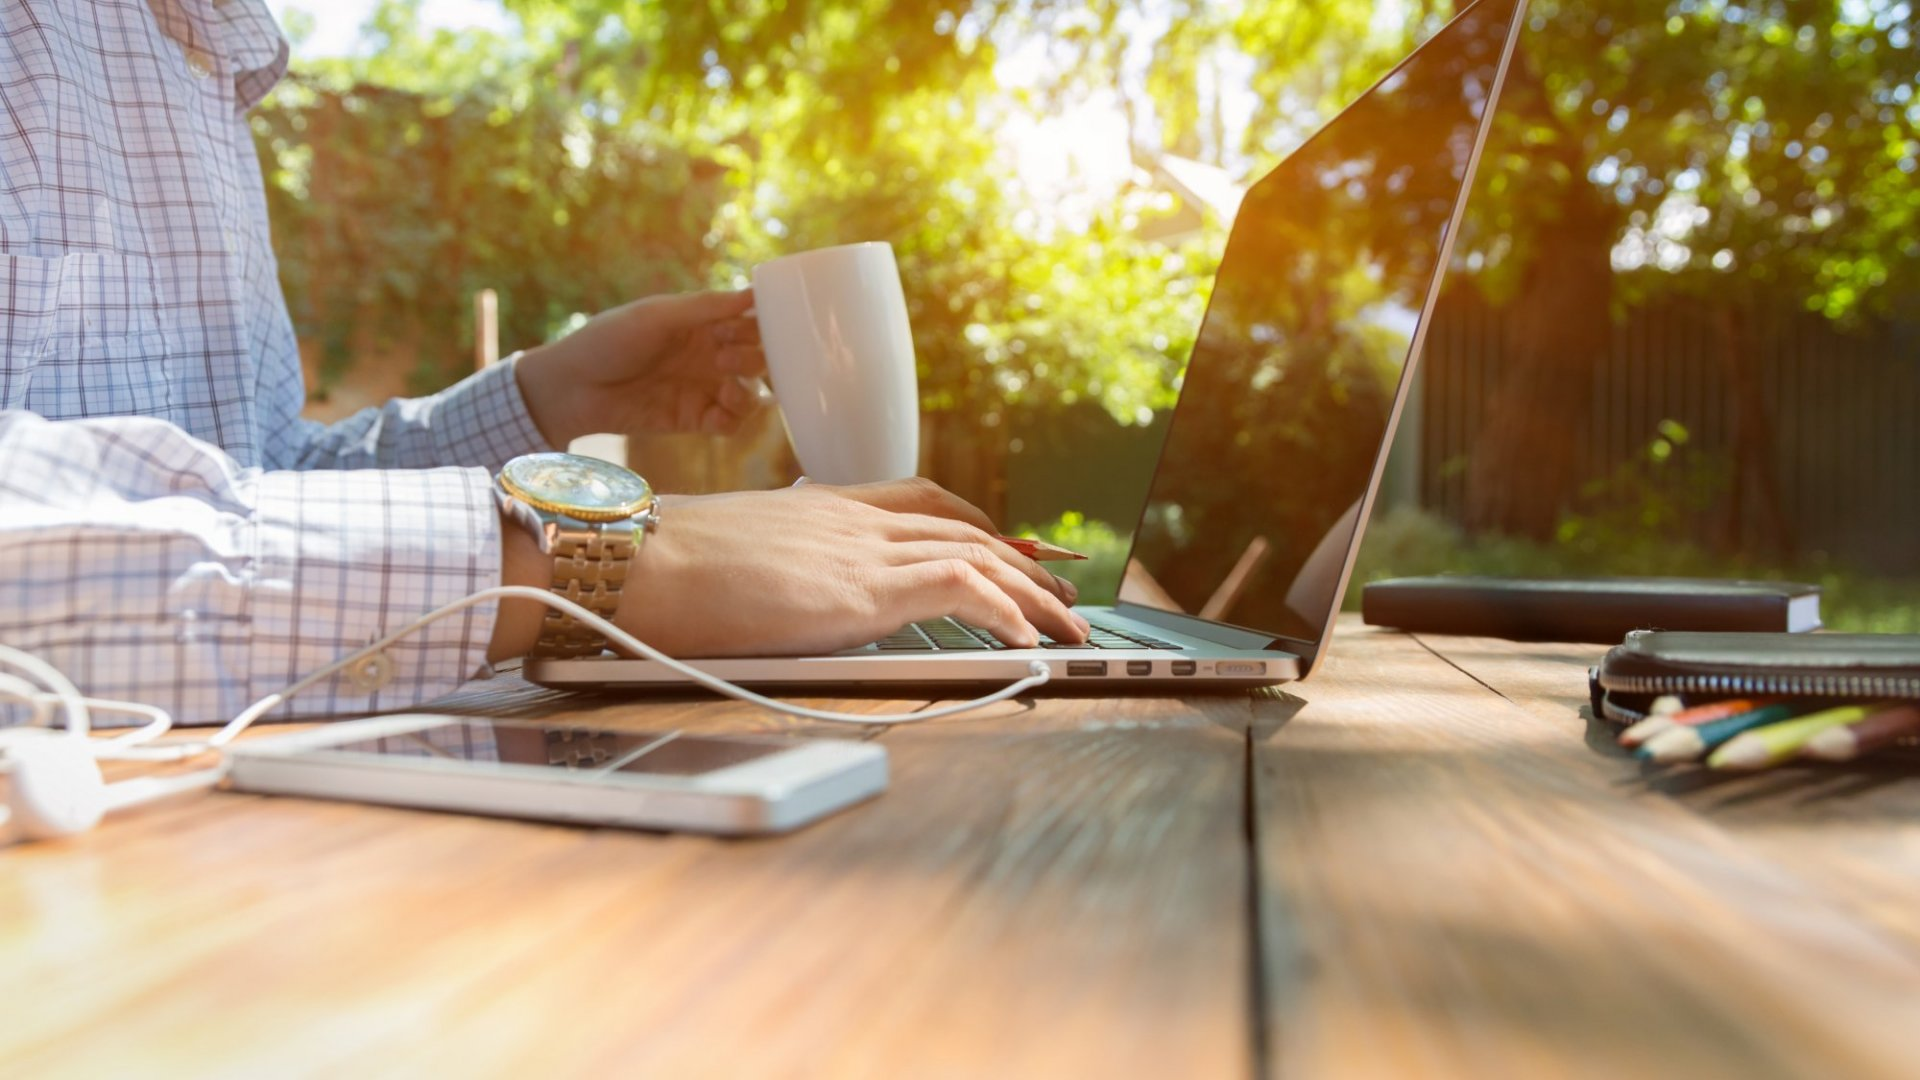 Managing a remote workforce requires team, tools and trust.